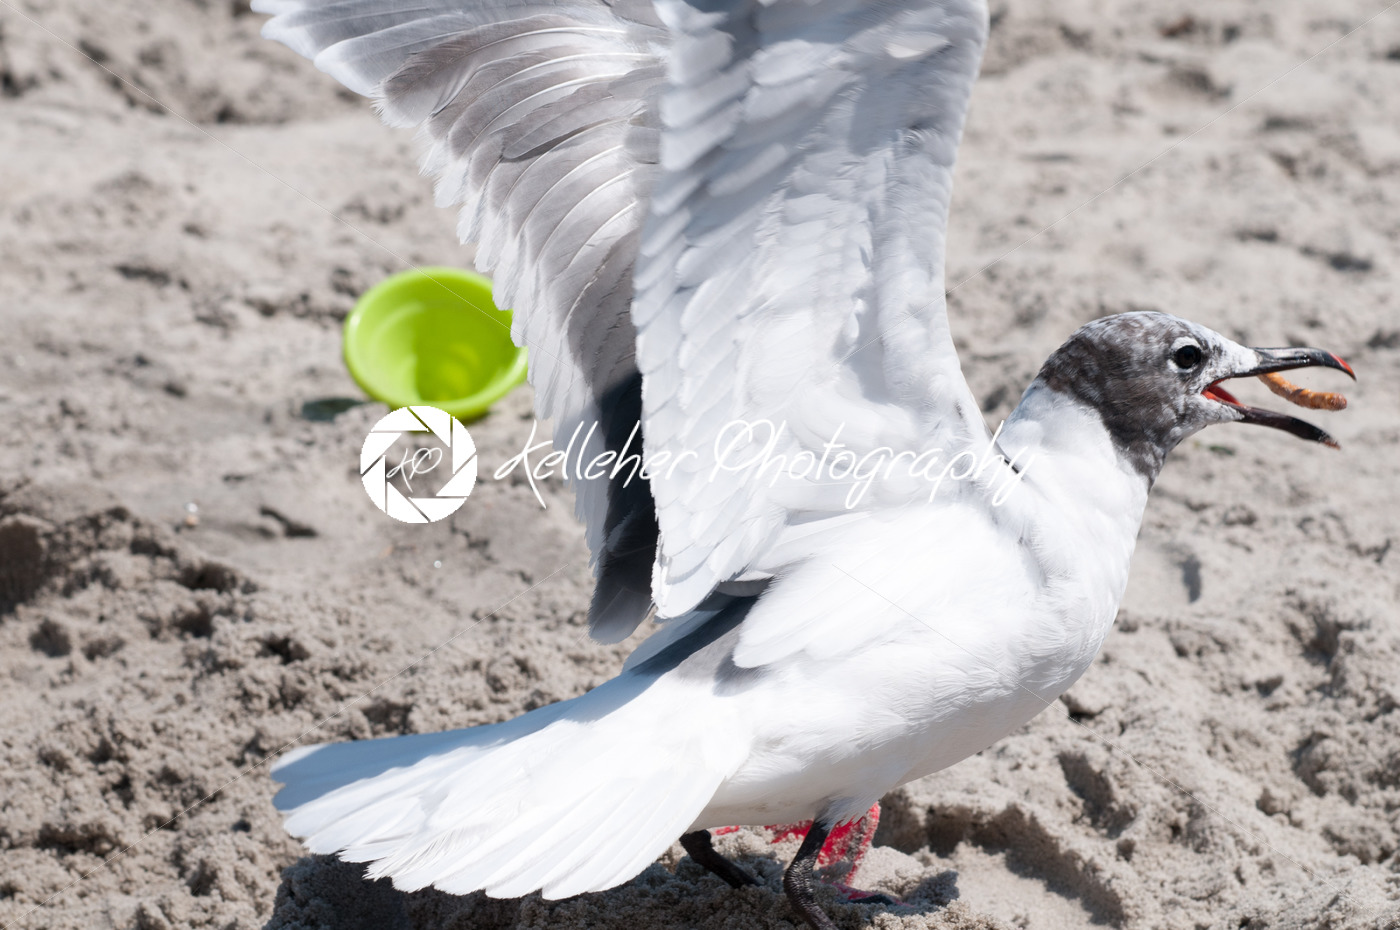 Seagull catching a pretzel in its mouth on the beach in Ocean City, NJ - Kelleher Photography Store